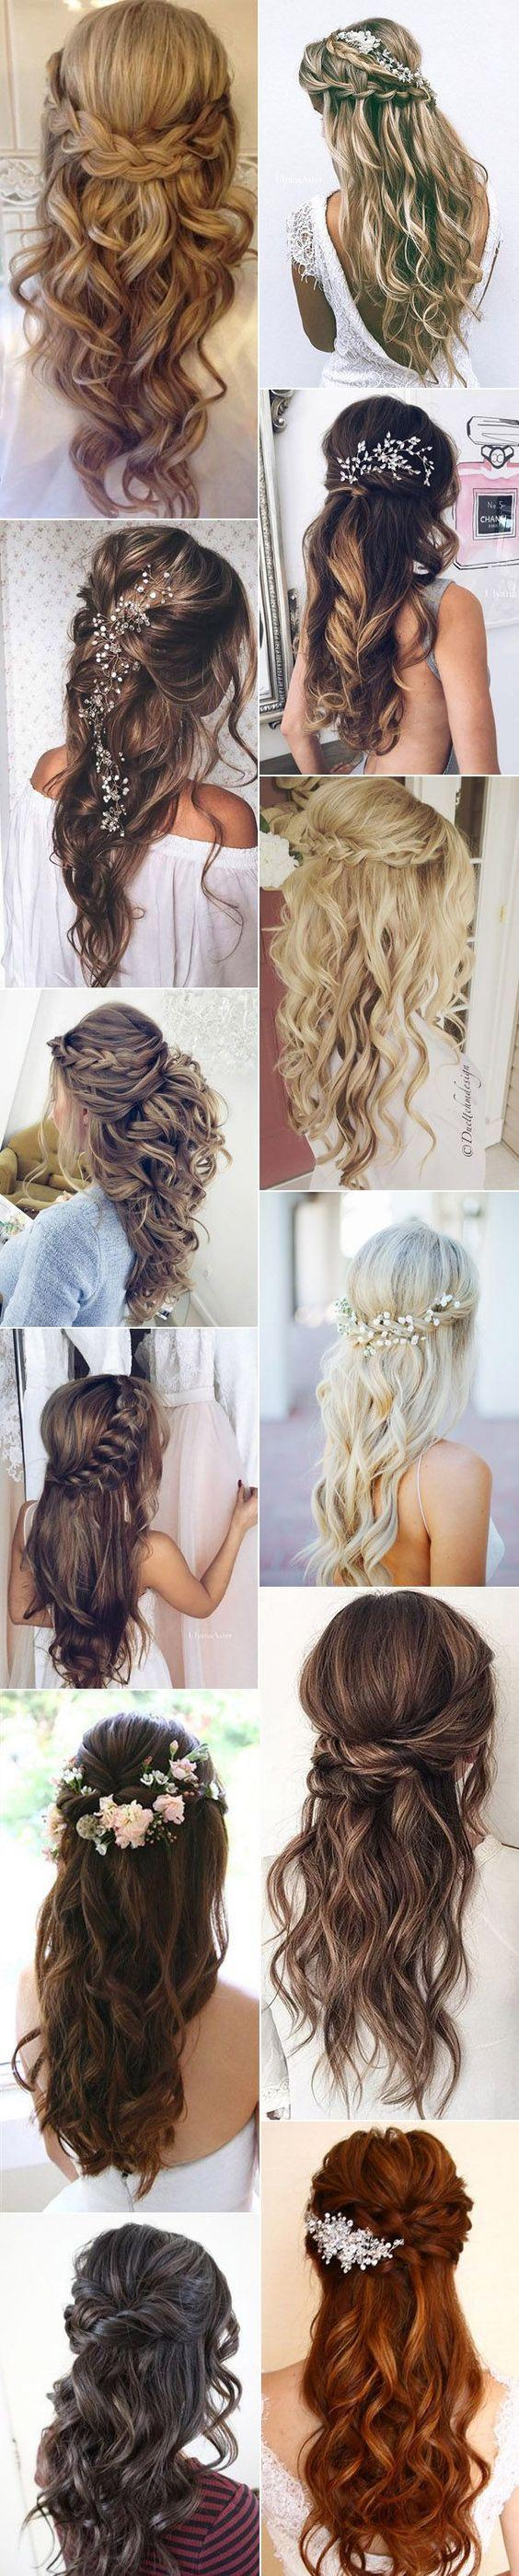 Wedding - 20 Amazing Half Up Half Down Wedding Hairstyle Ideas